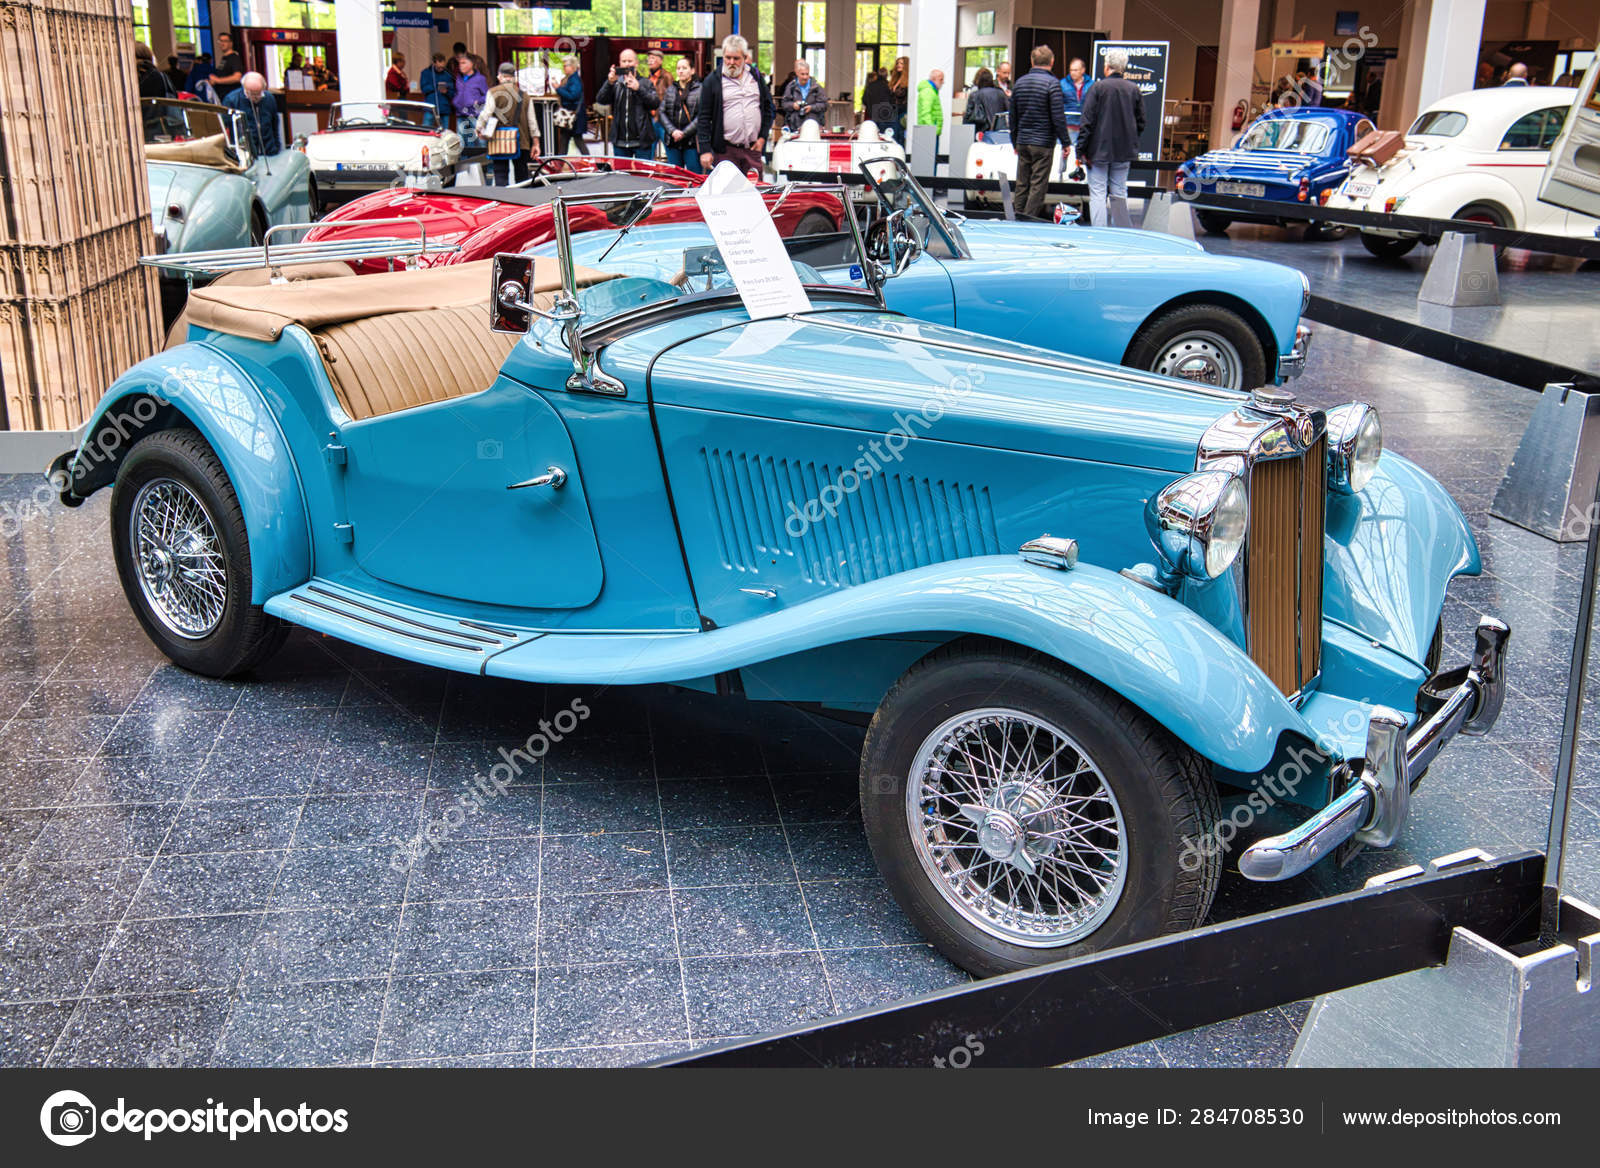 Friedrichshafen May 2019 Blue Mg Td 1951 Cabrio Roadster At Motorworld Classics Bodensee On May 11 2019 In Friedrichshafen Germany Stock Editorial Photo C Eagle2308 284708530